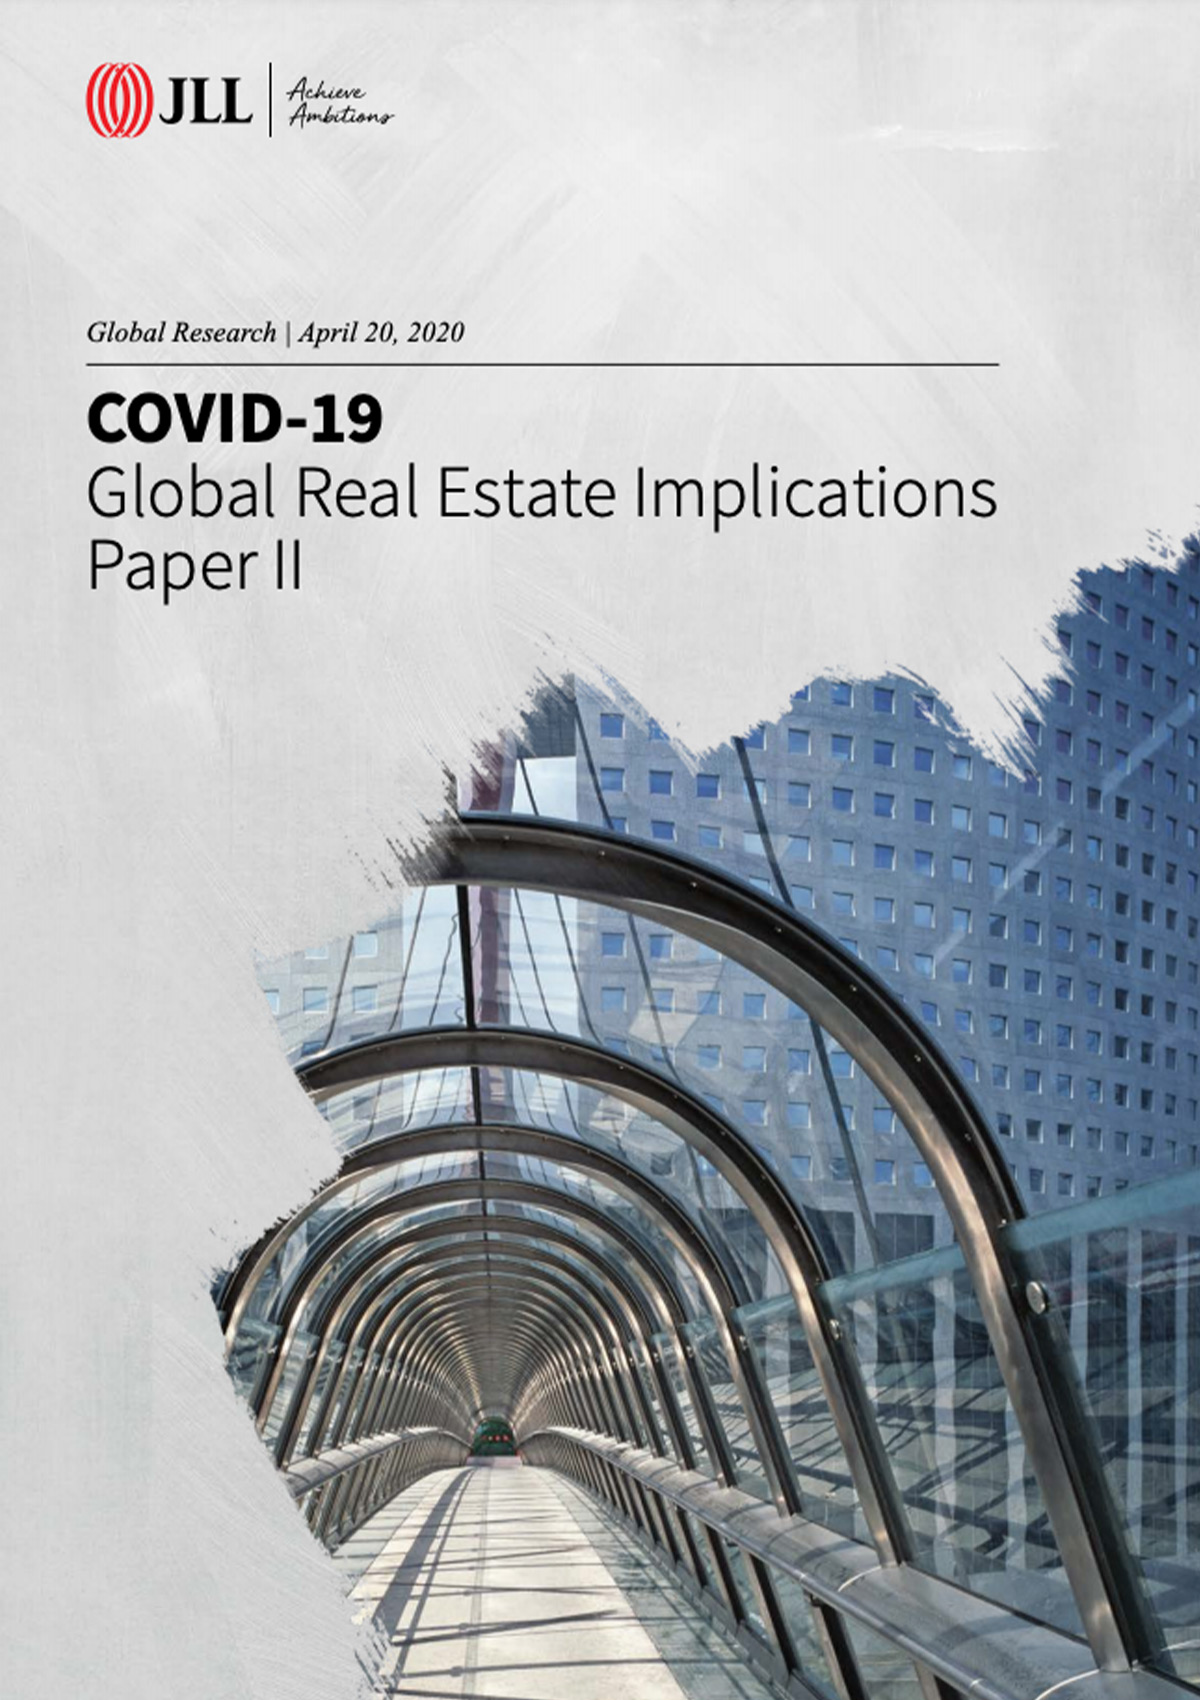 Covid-19: Global Real Estate Implications